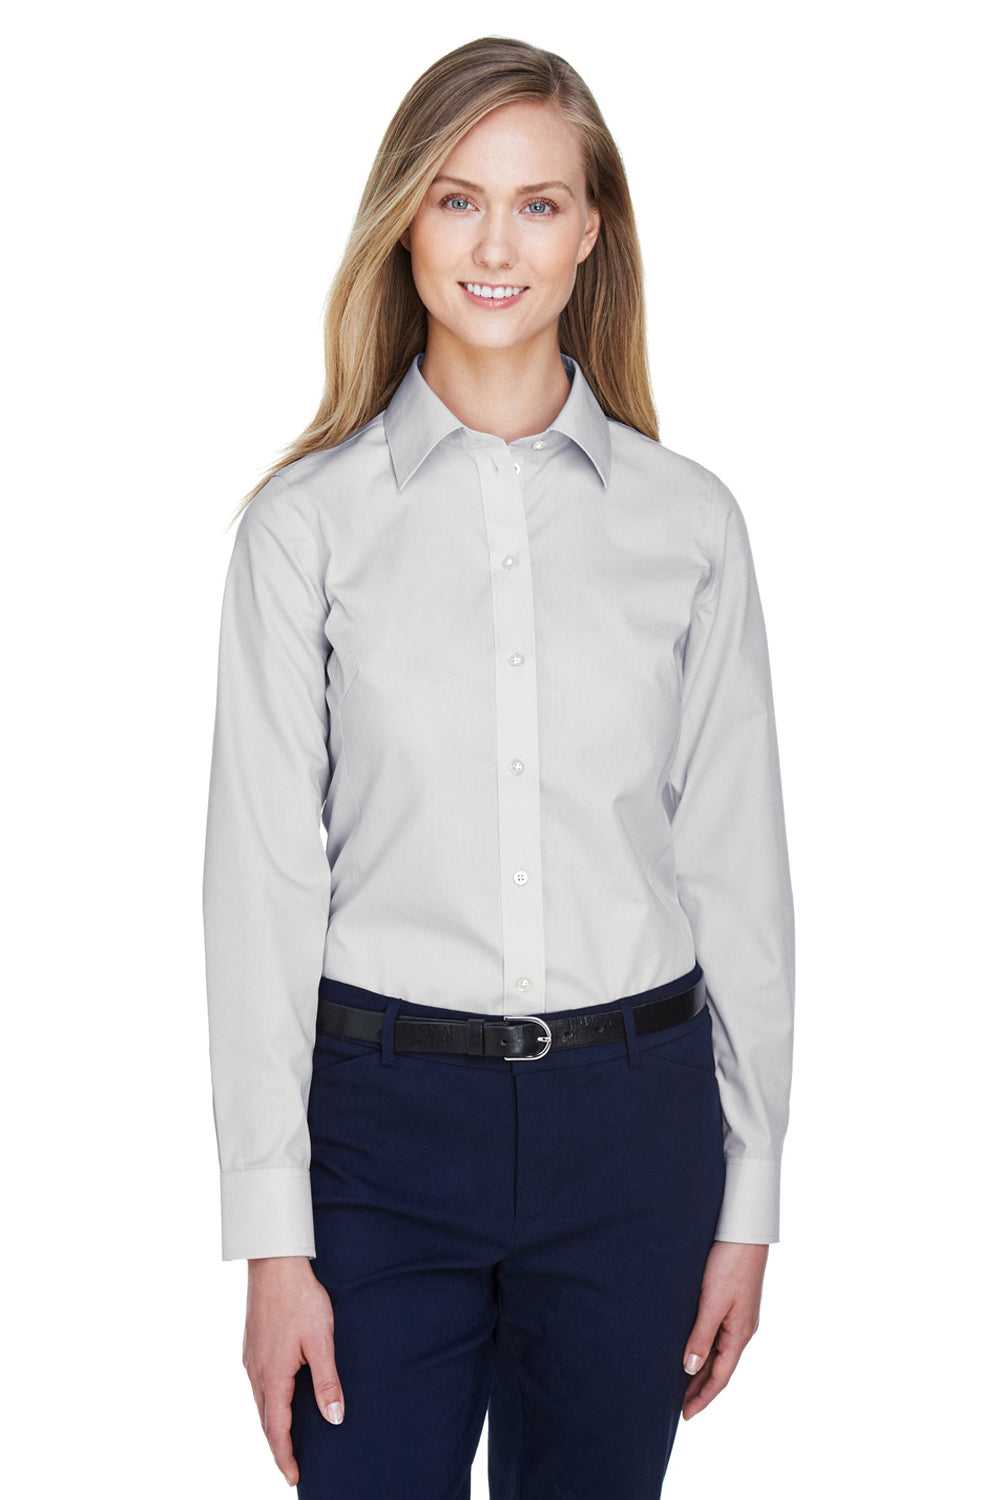 Devon & Jones D620W Womens Crown Woven Collection Wrinkle Resistant Long Sleeve Button Down Shirt Silver Grey Front